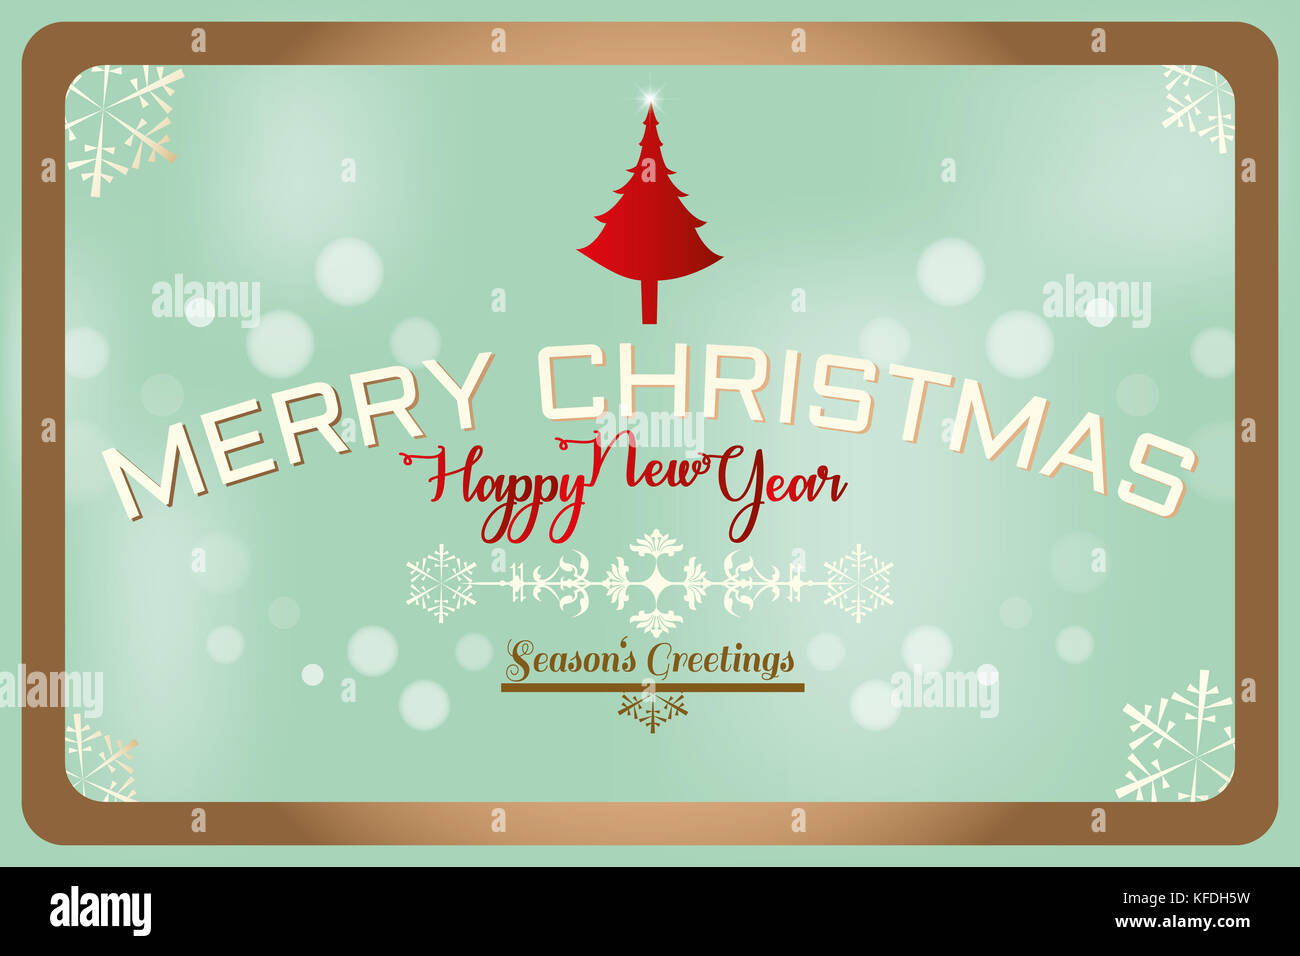 Merry christmas seasons greetings and happy new year text label merry christmas seasons greetings and happy new year text label on a winter background with snowflakes tree and design elemnts greeting card templ kristyandbryce Choice Image